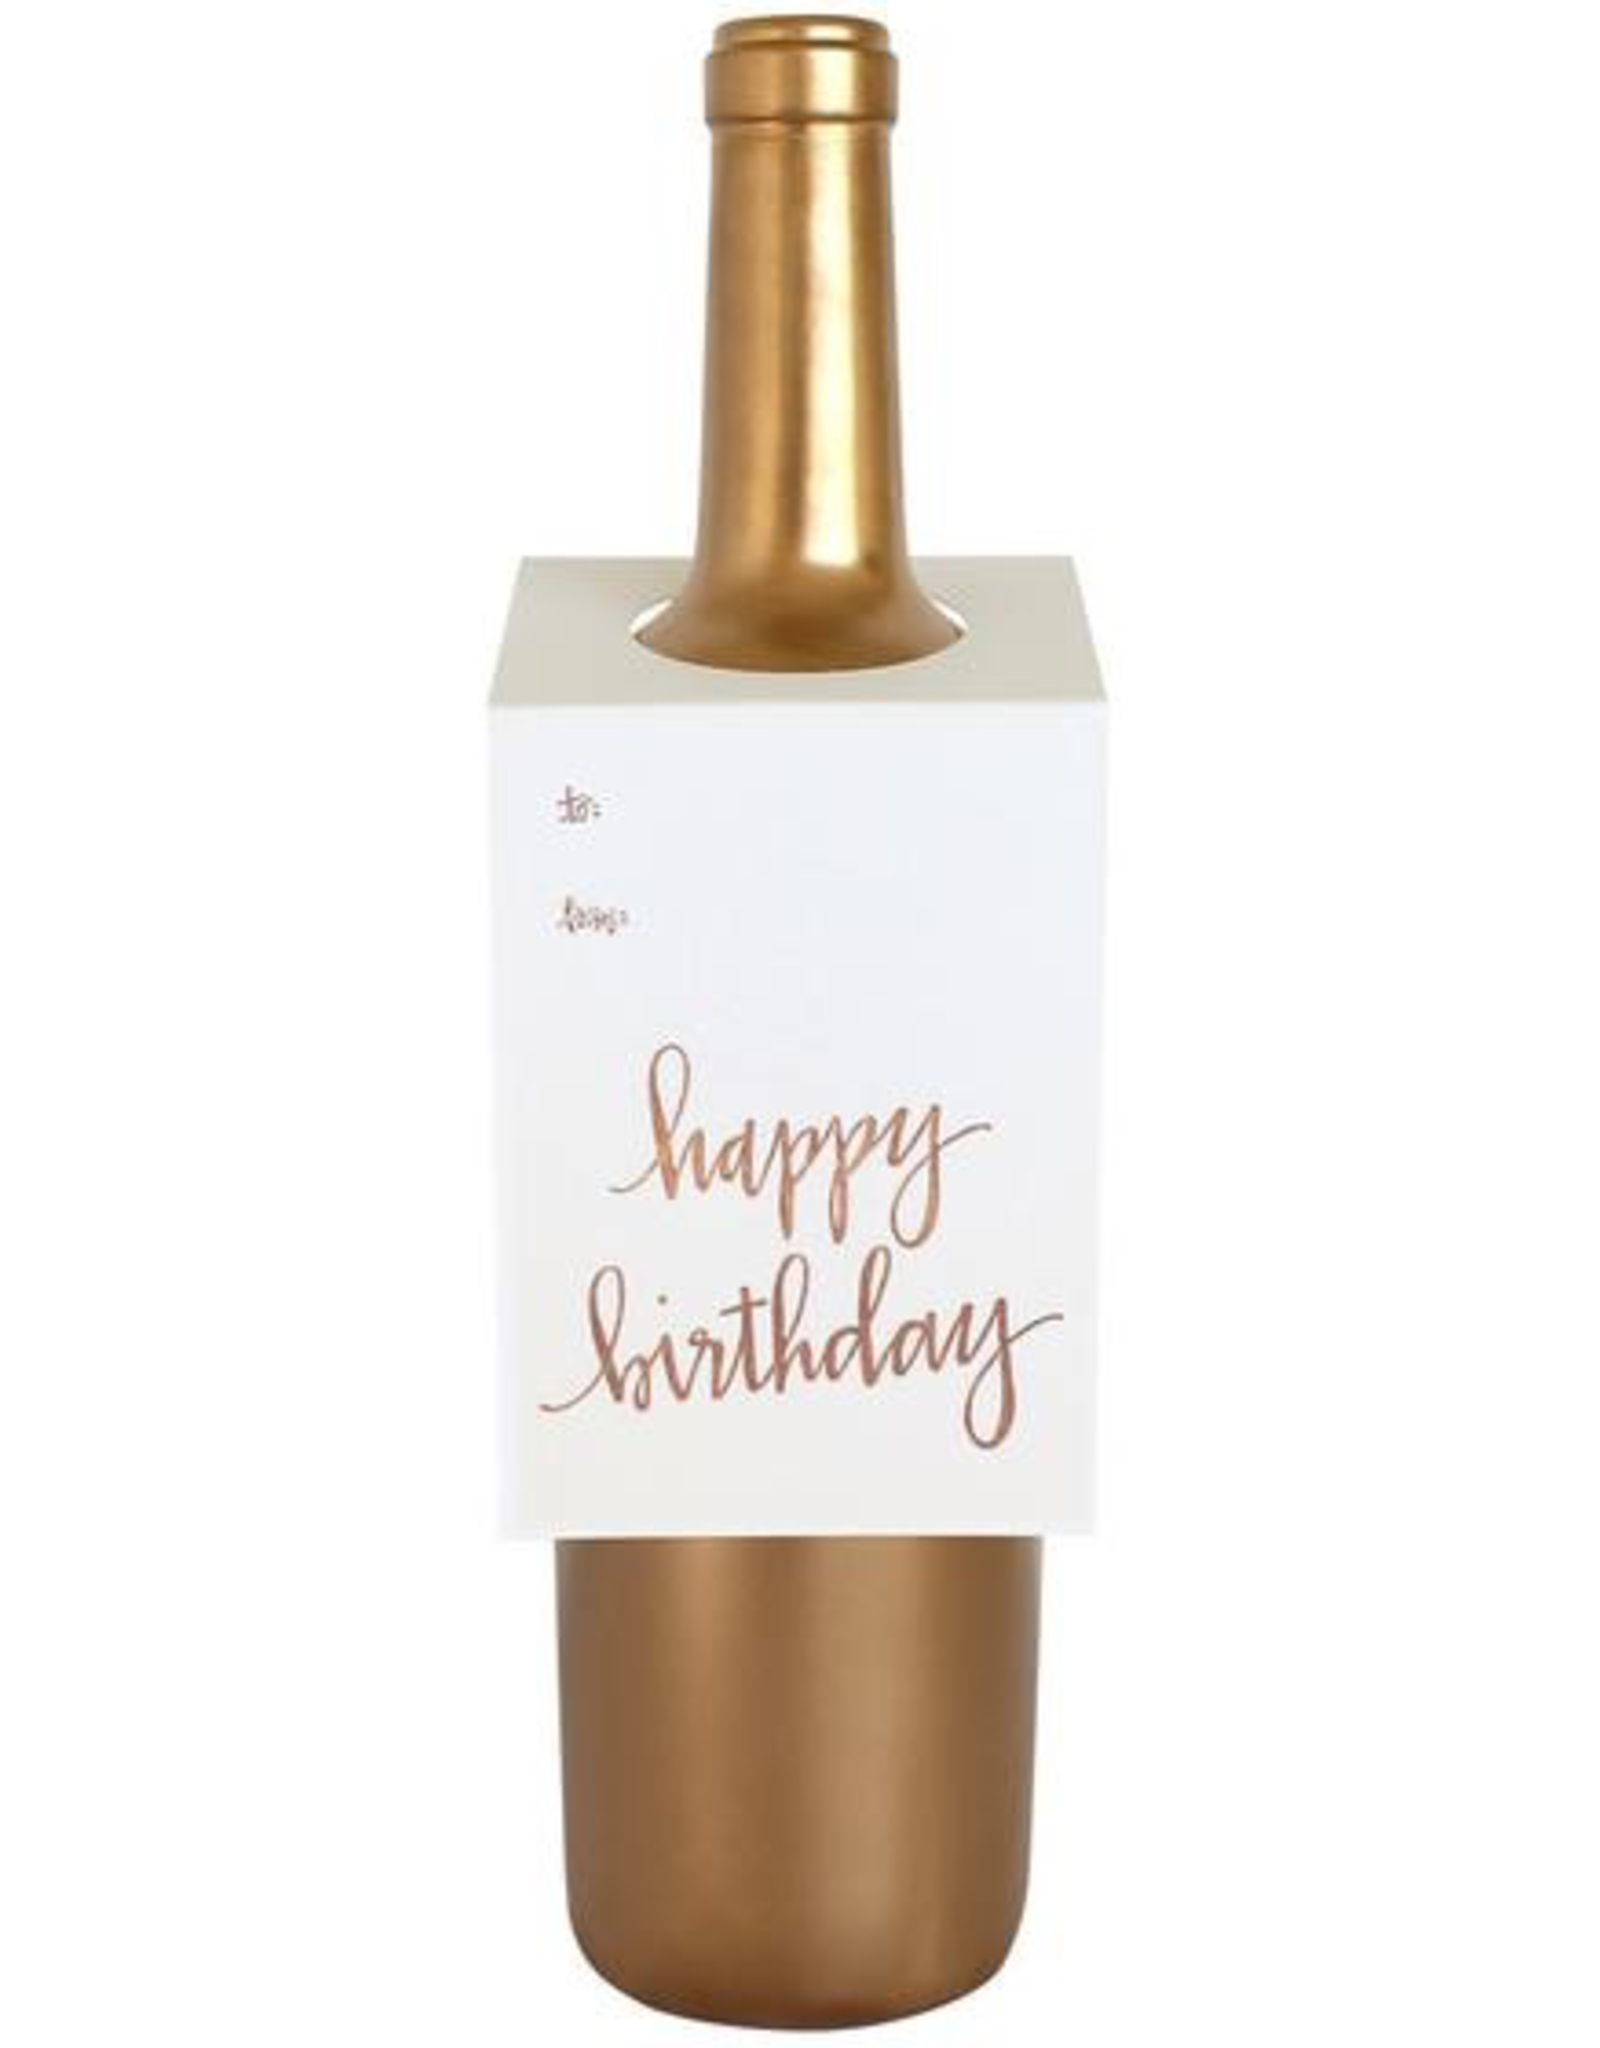 Card, Wine Tag, Happy Birthday, Rose Gold Foil